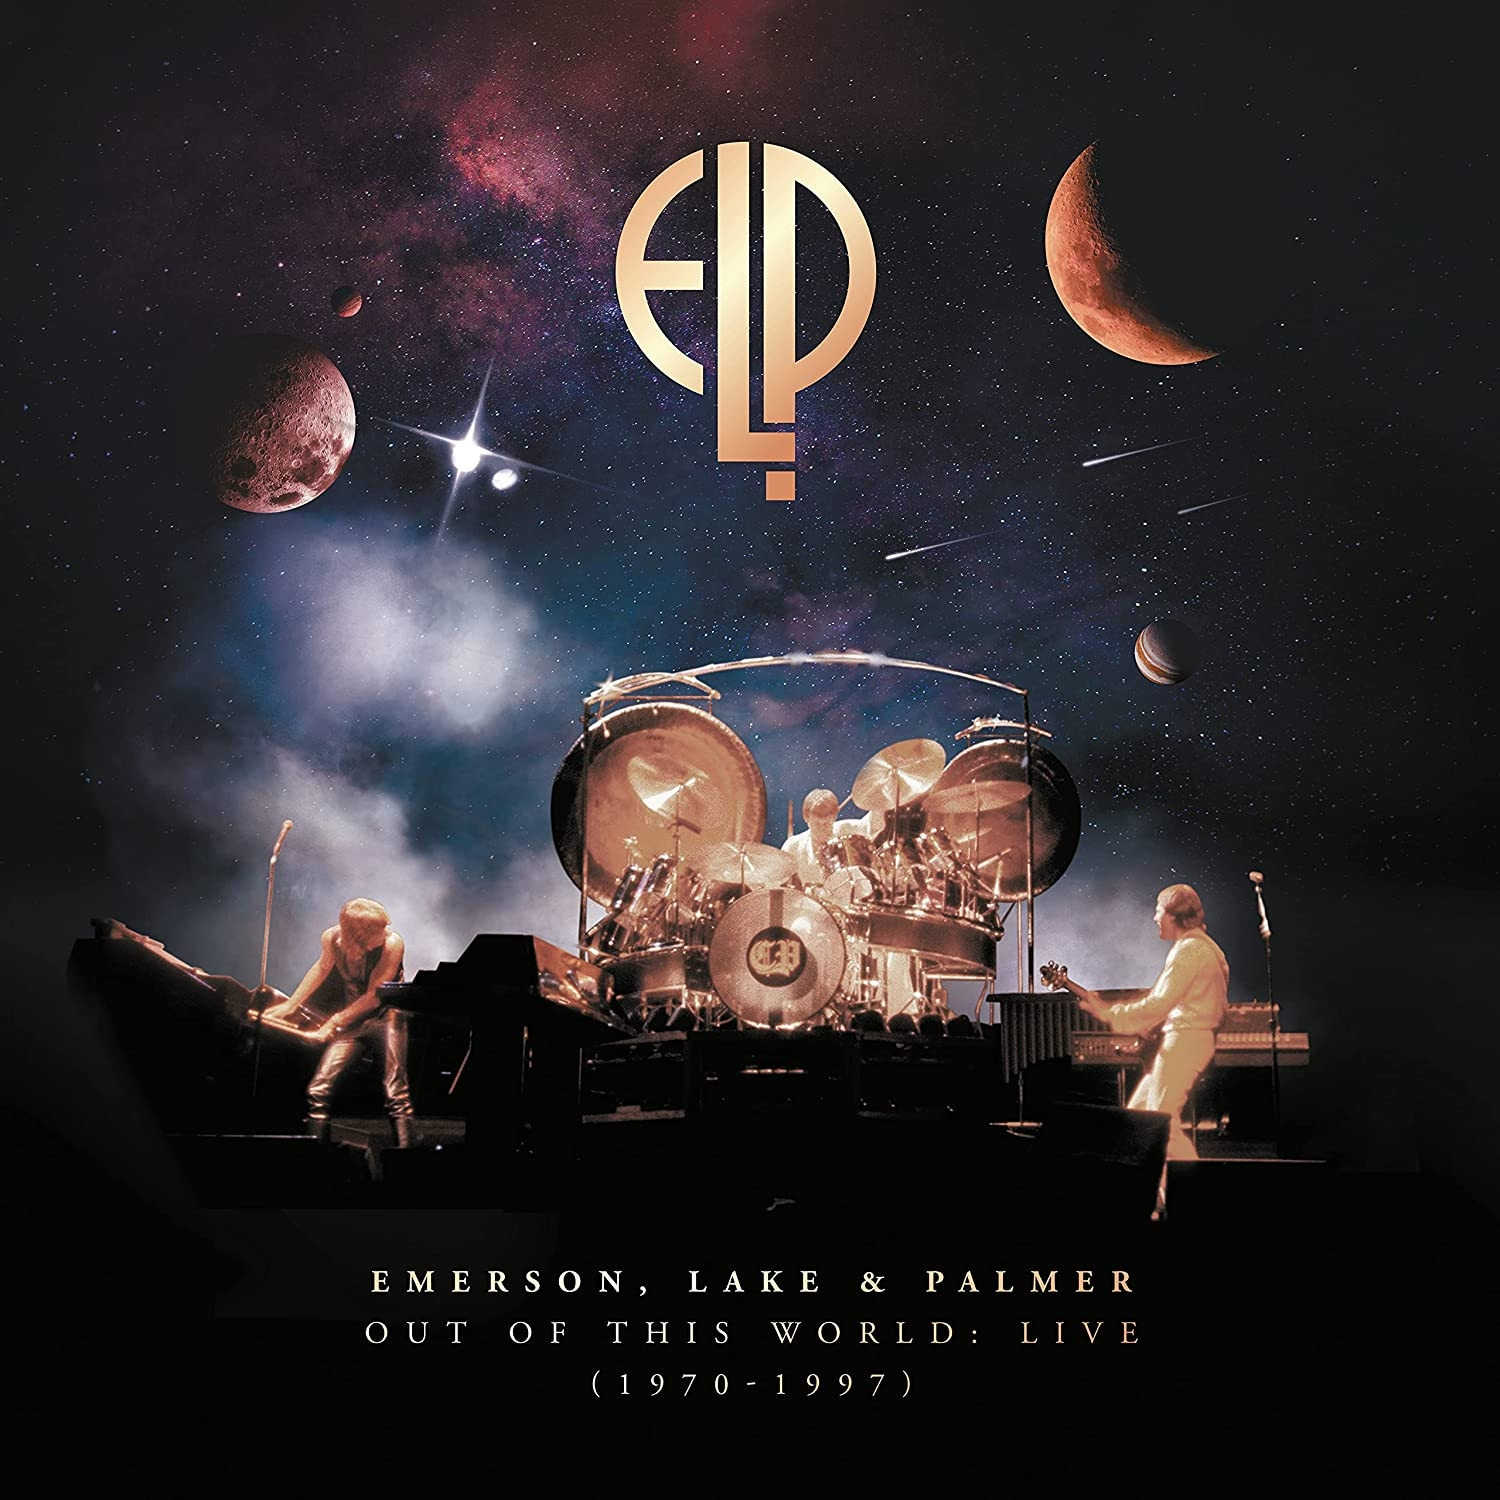 Out of This World: Live (1970-1997) (7CD)